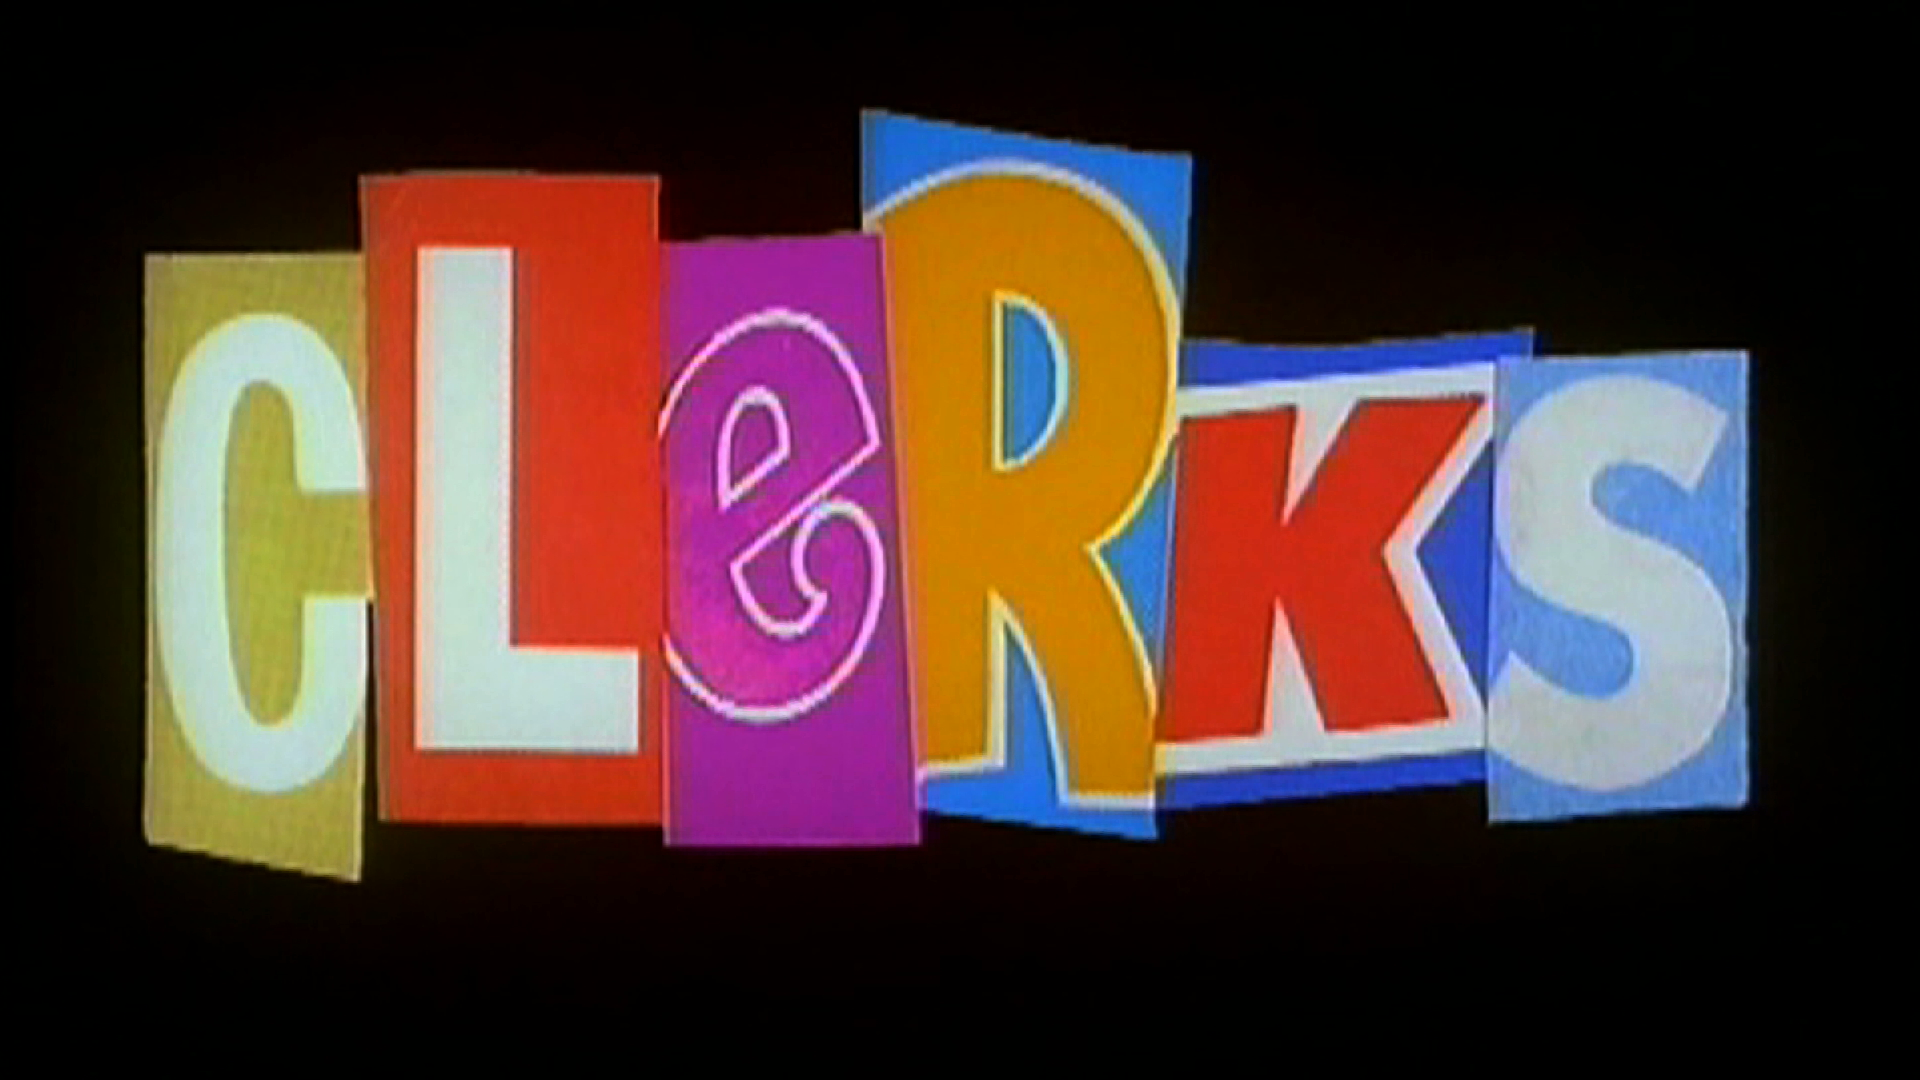 CLERKS-TITLE